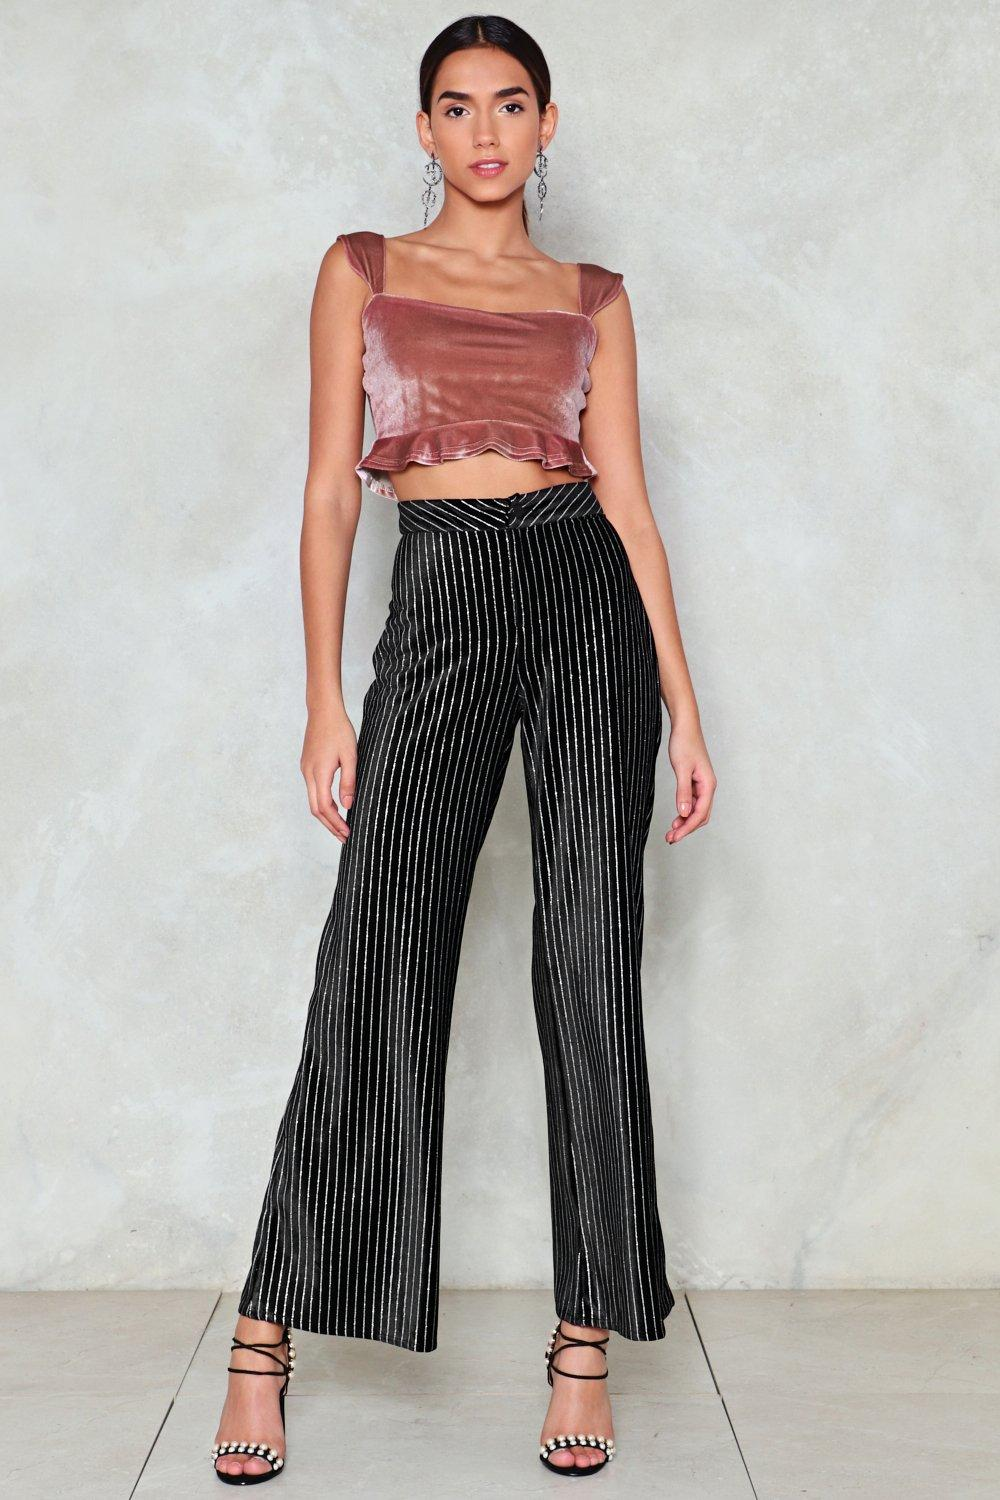 5651a97b26f68 Any Minute Now Velvet Crop Top